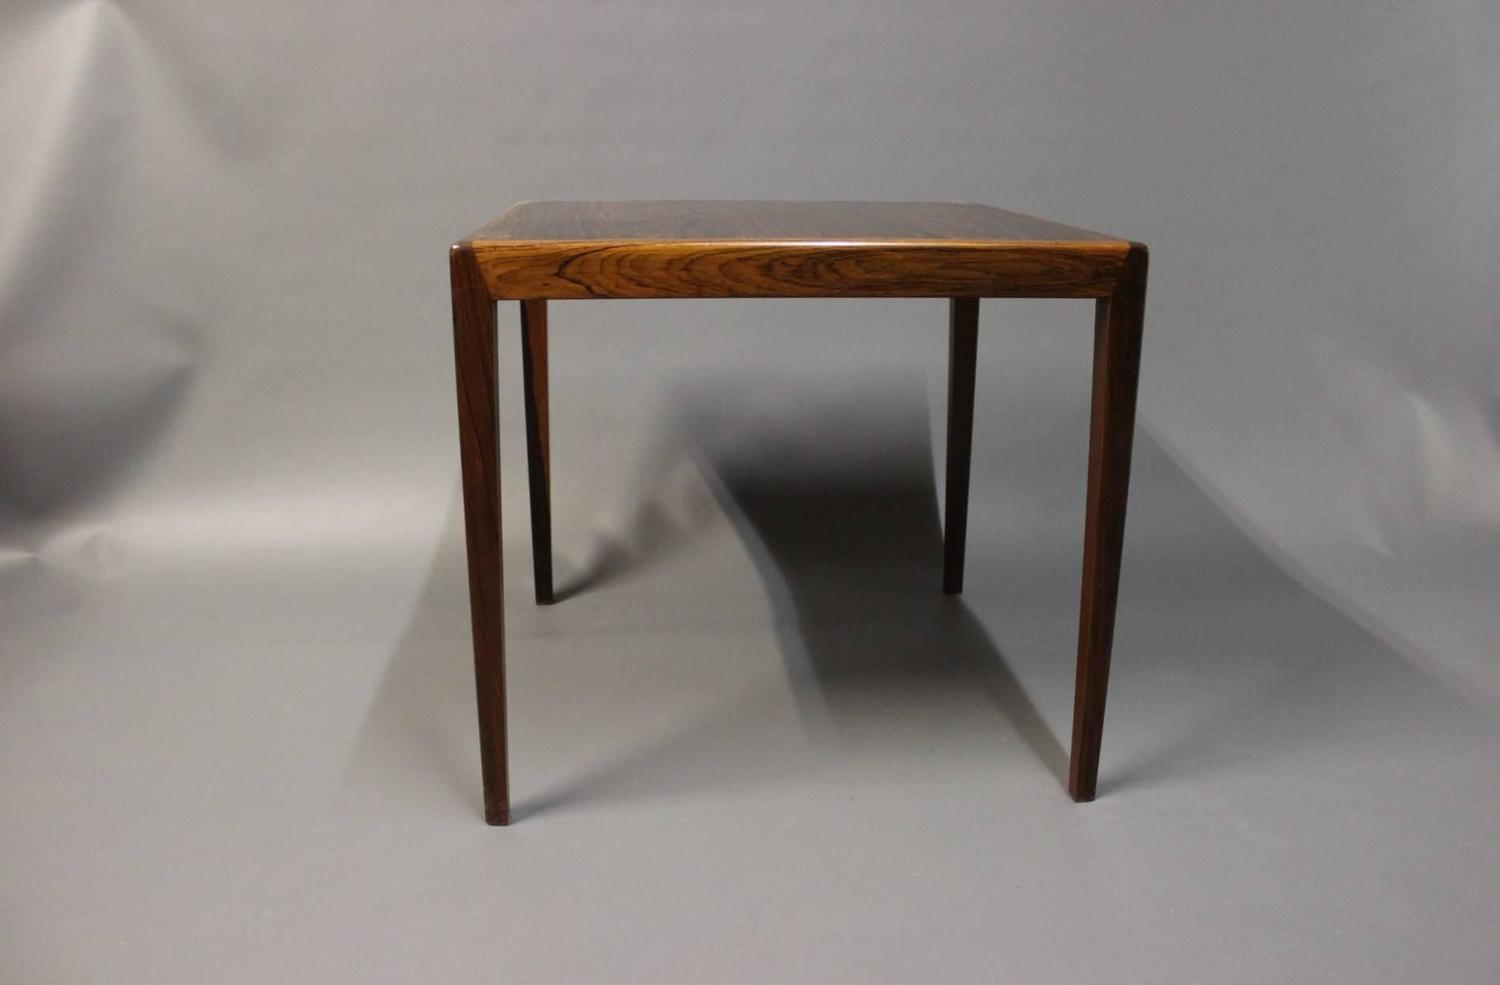 lamptable rosewood from the for accent table inch round tablecloth mirrored sofa silver grey coffee barn style end tables huge outdoor umbrella room essentials desk rechargeable